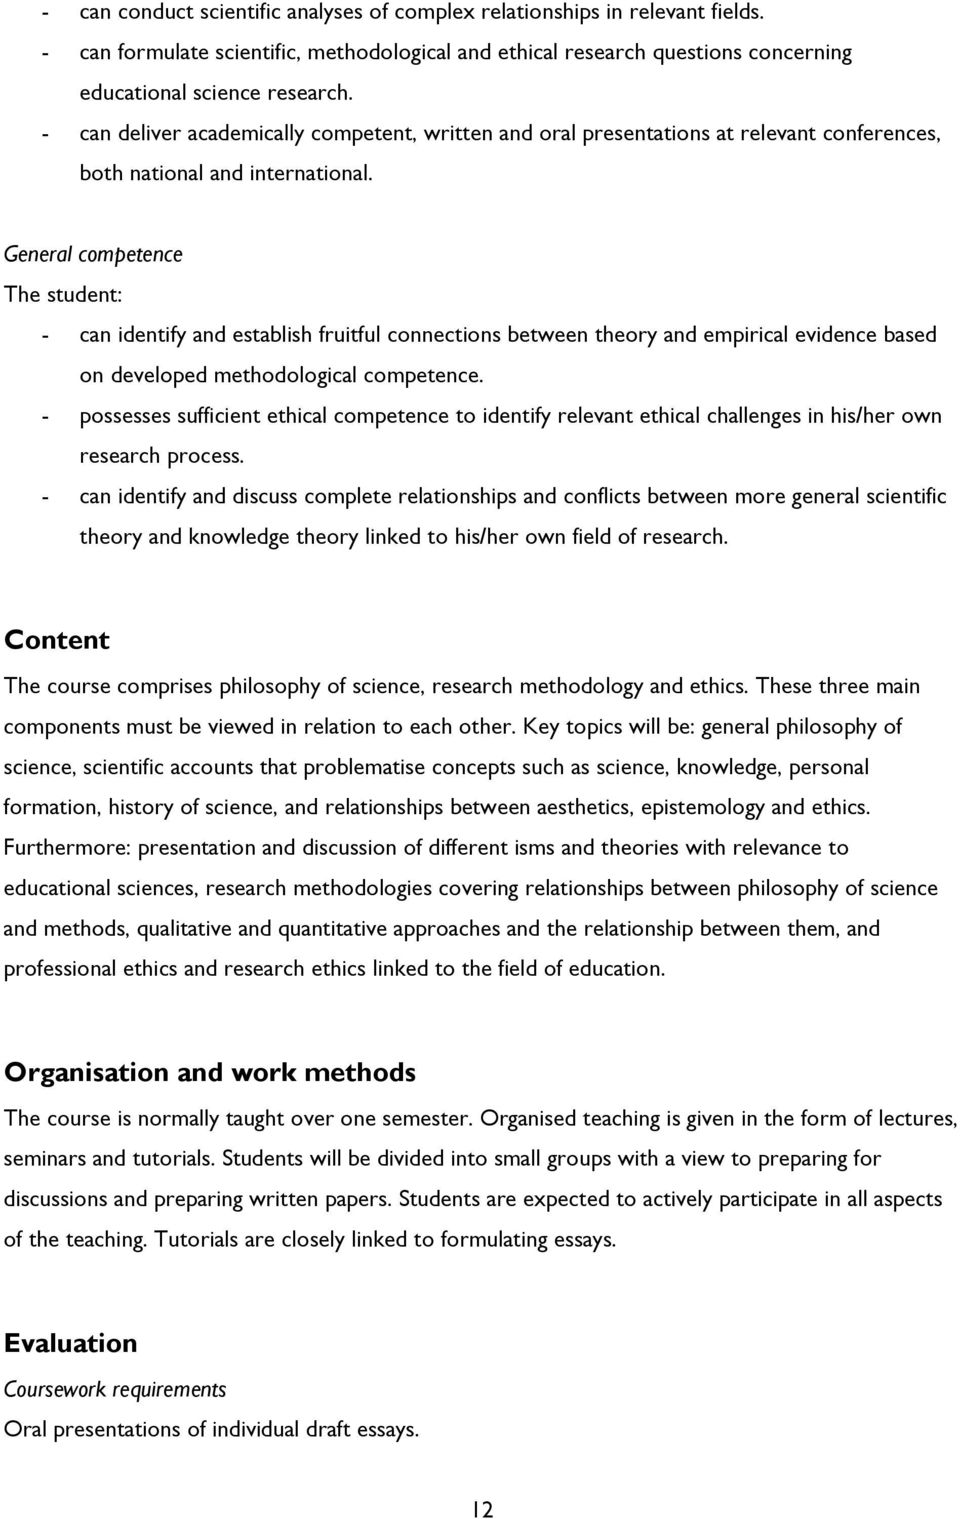 General competence The student: - can identify and establish fruitful connections between theory and empirical evidence based on developed methodological competence.